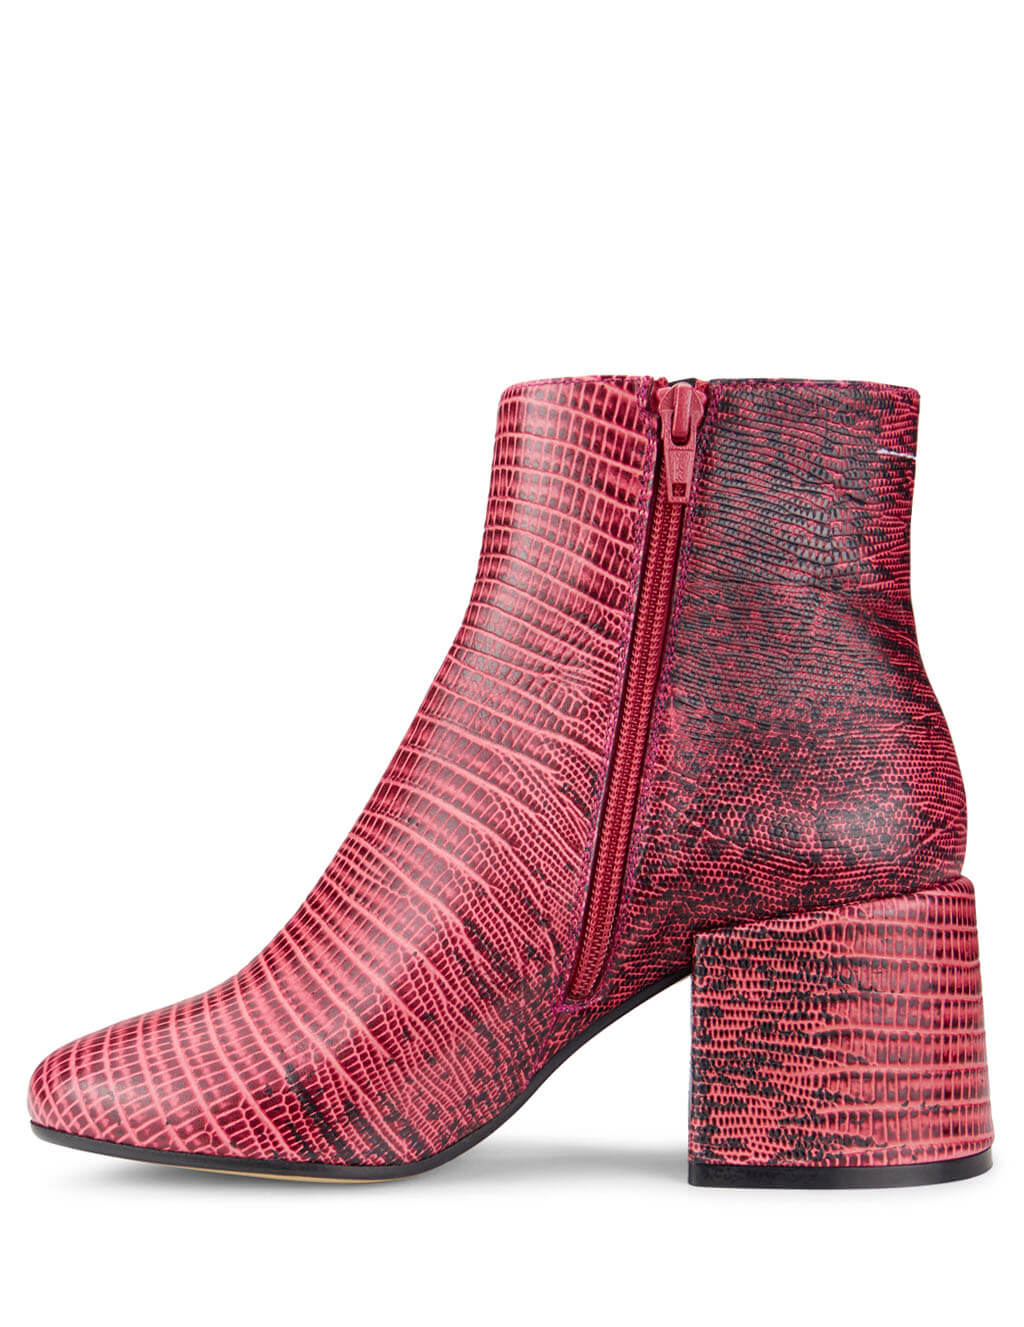 MM6 Maison Margiela Women's Giulio Fashion Red Python Ankle Boots S59WU0092P2716T4040